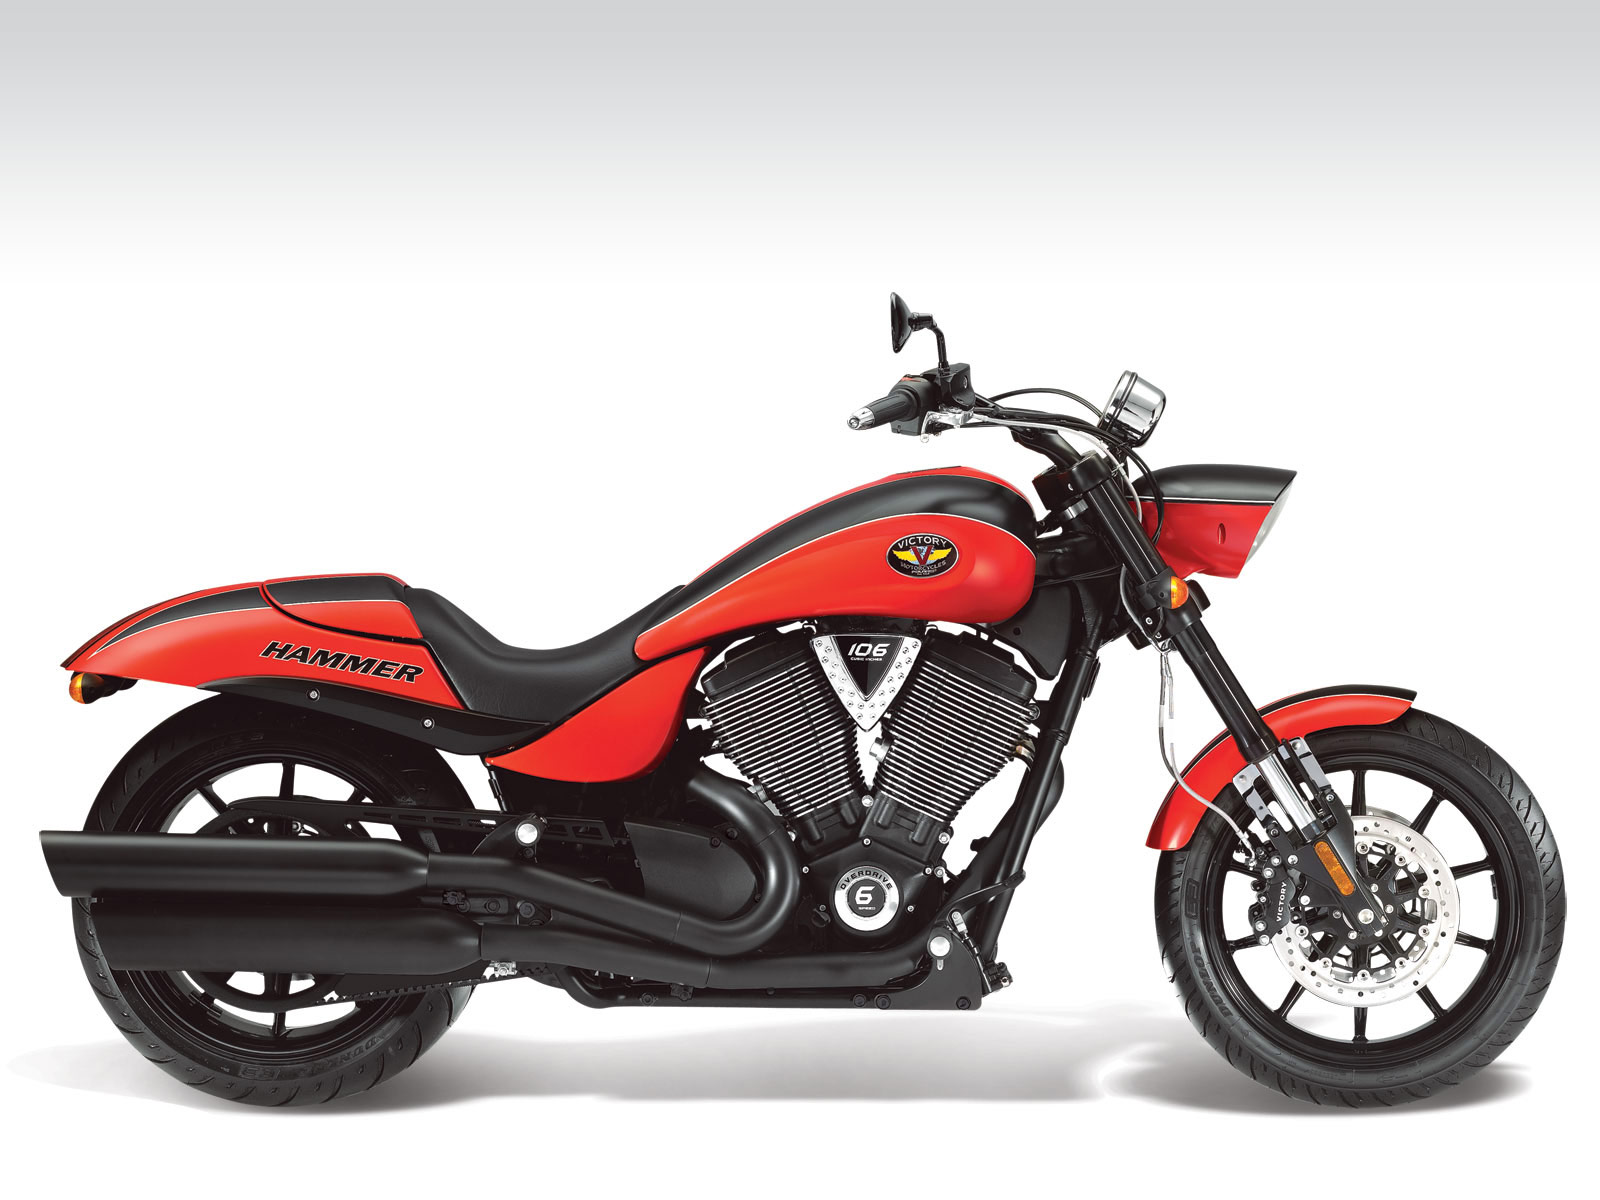 2011 VICTORY Hammer S motorcycle wallpaper